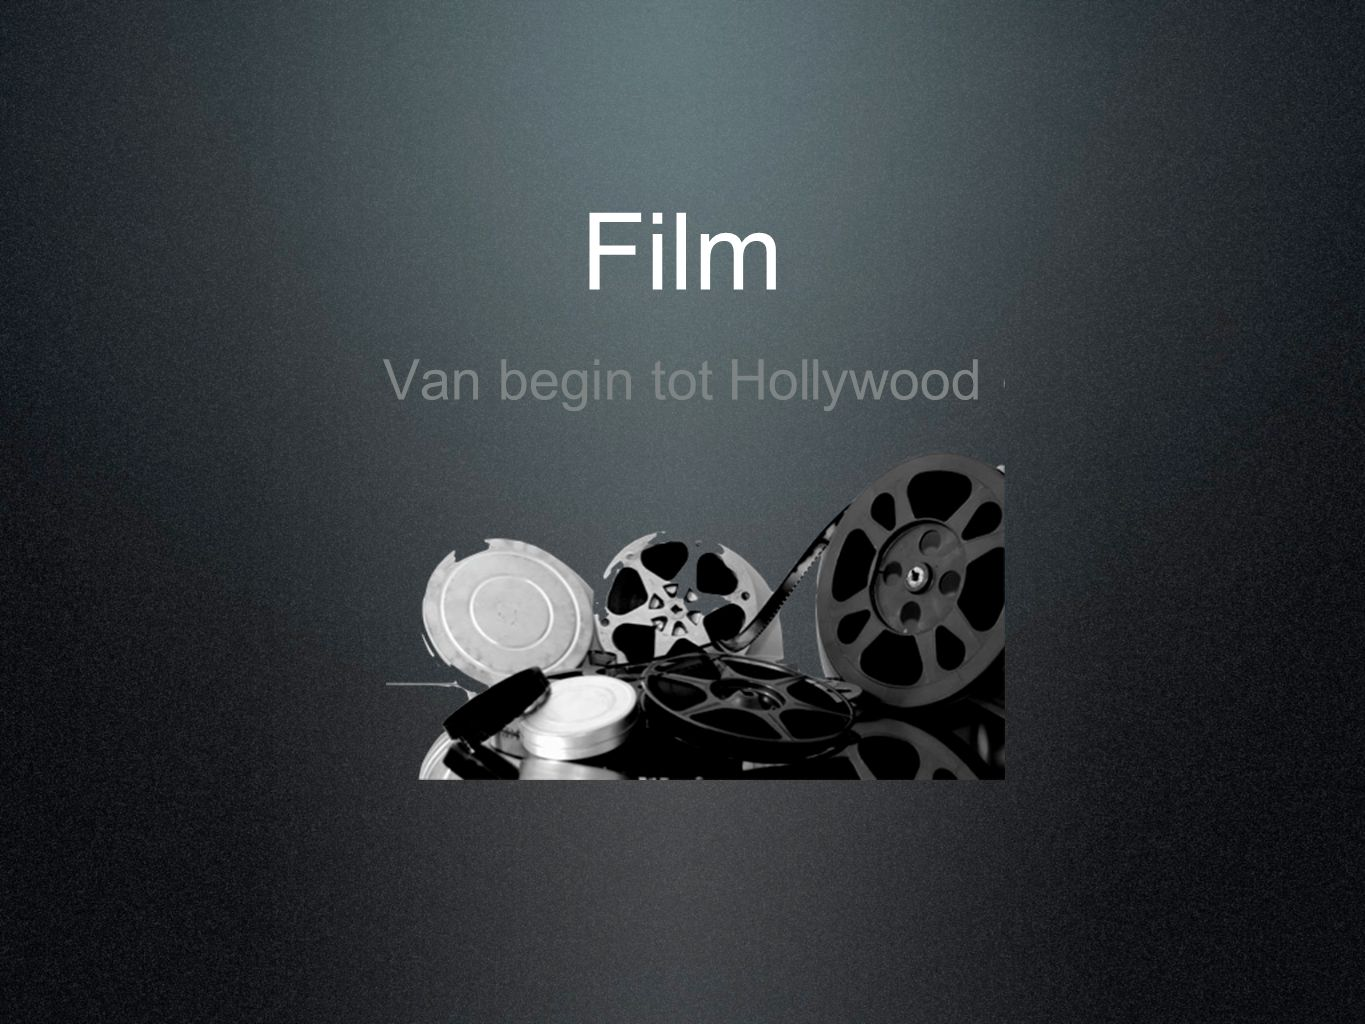 Van begin tot Hollywood